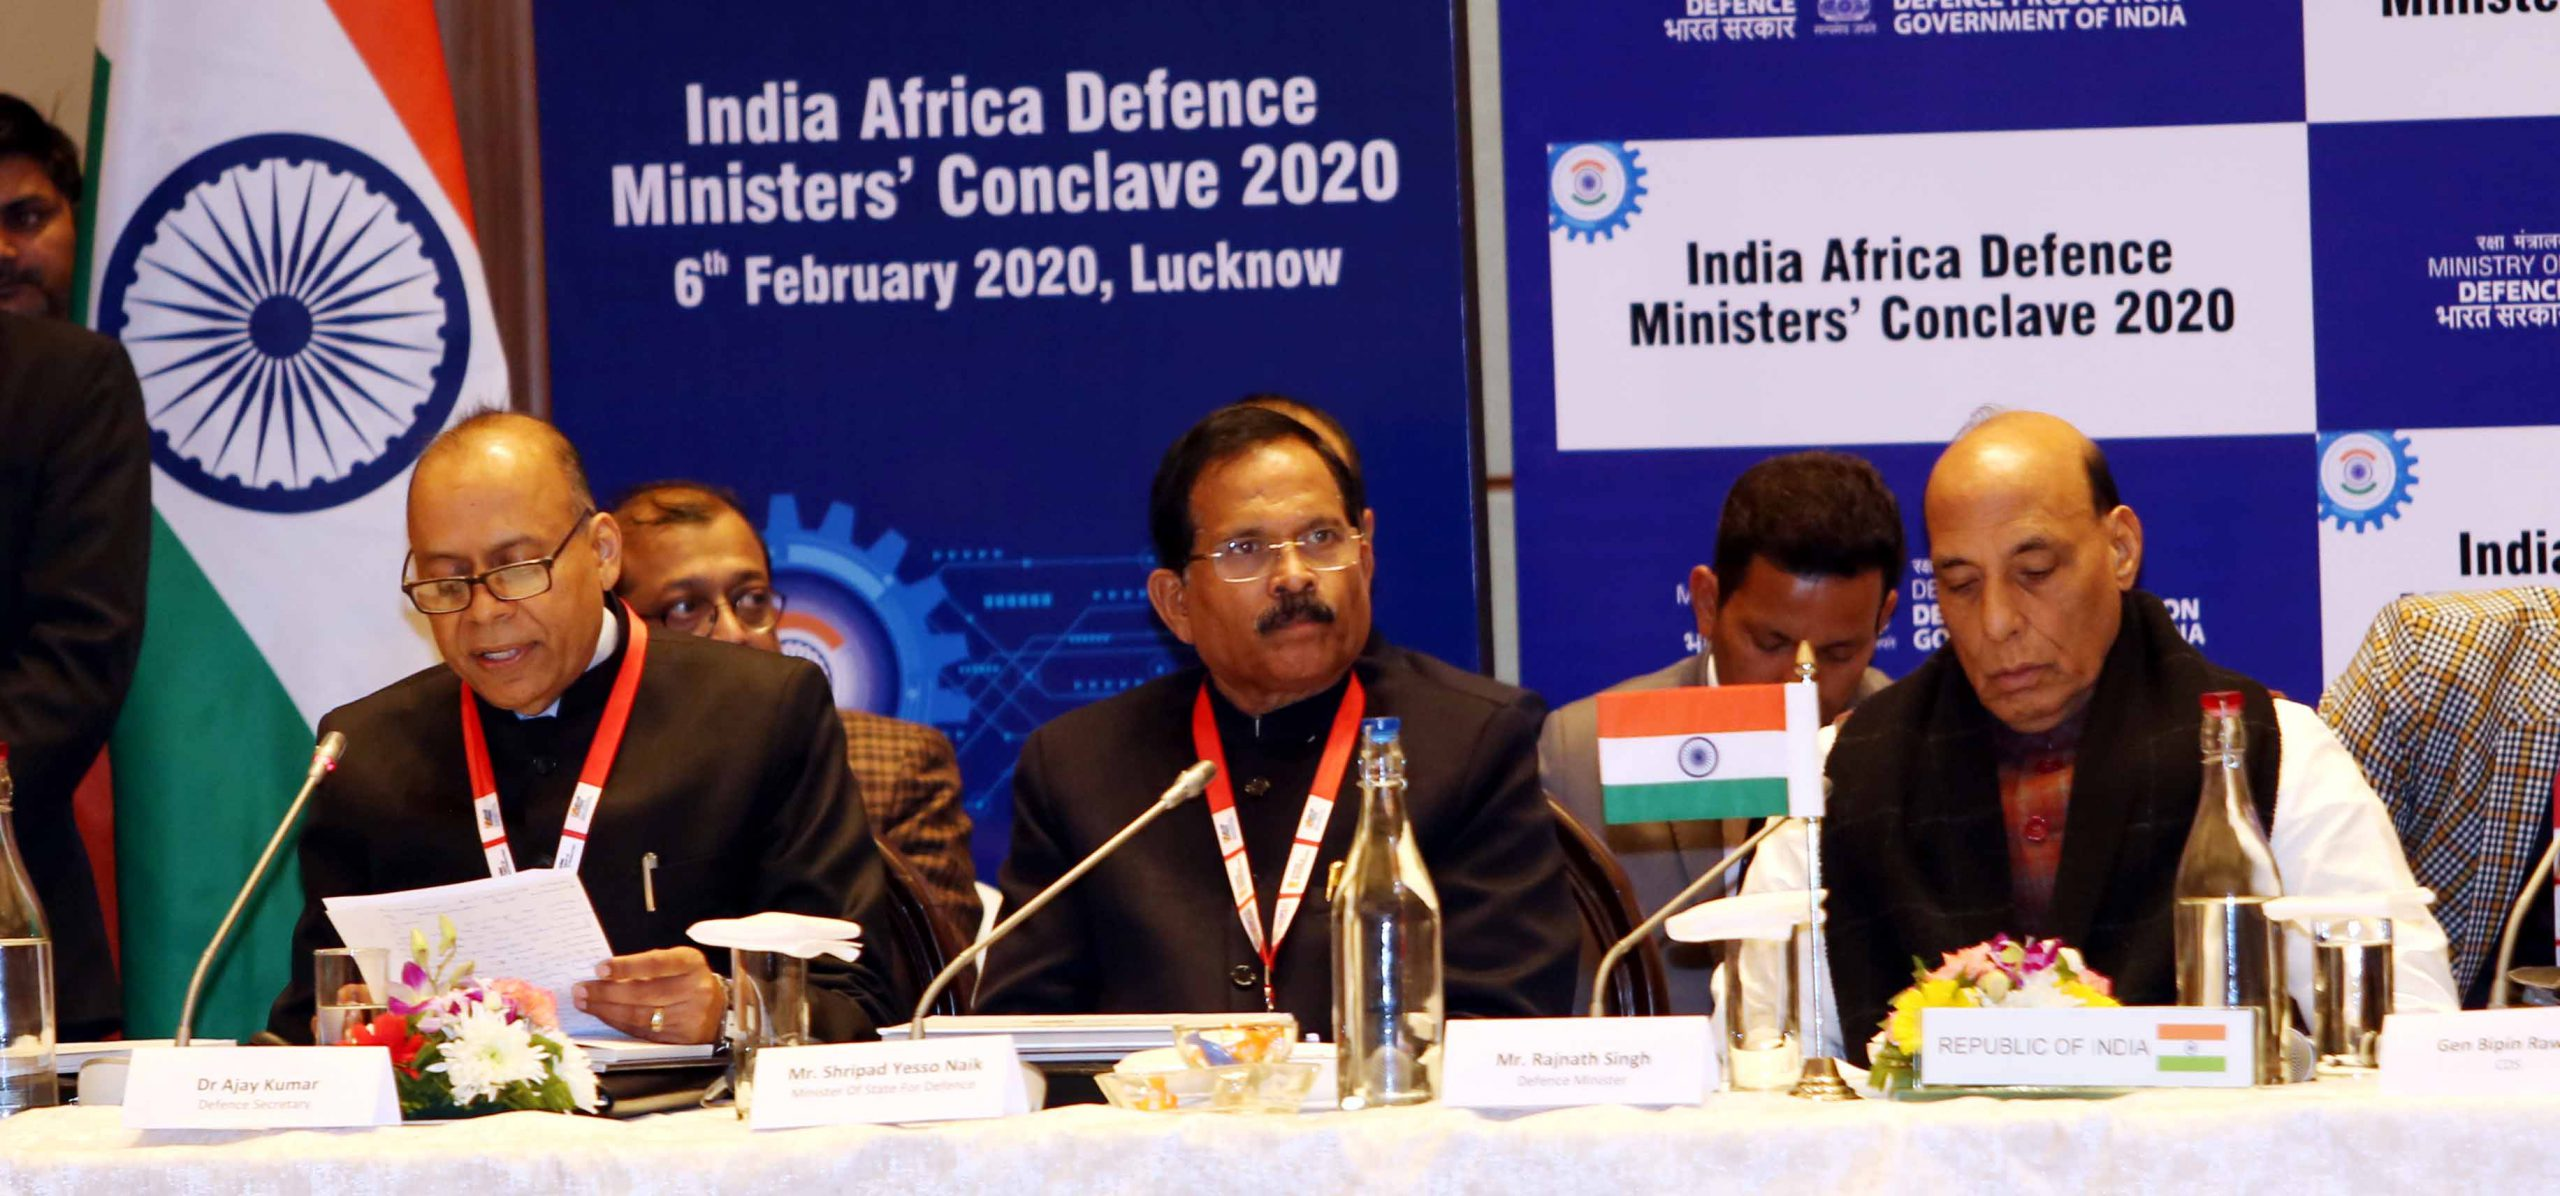 INAUGURATION OF 'INDIA AFRICA DEFENCE MINISTERS' CONCLAVE – 2020LA' by Hon'ble Defense Minister , Sh Rajnath Singh at Lucknow